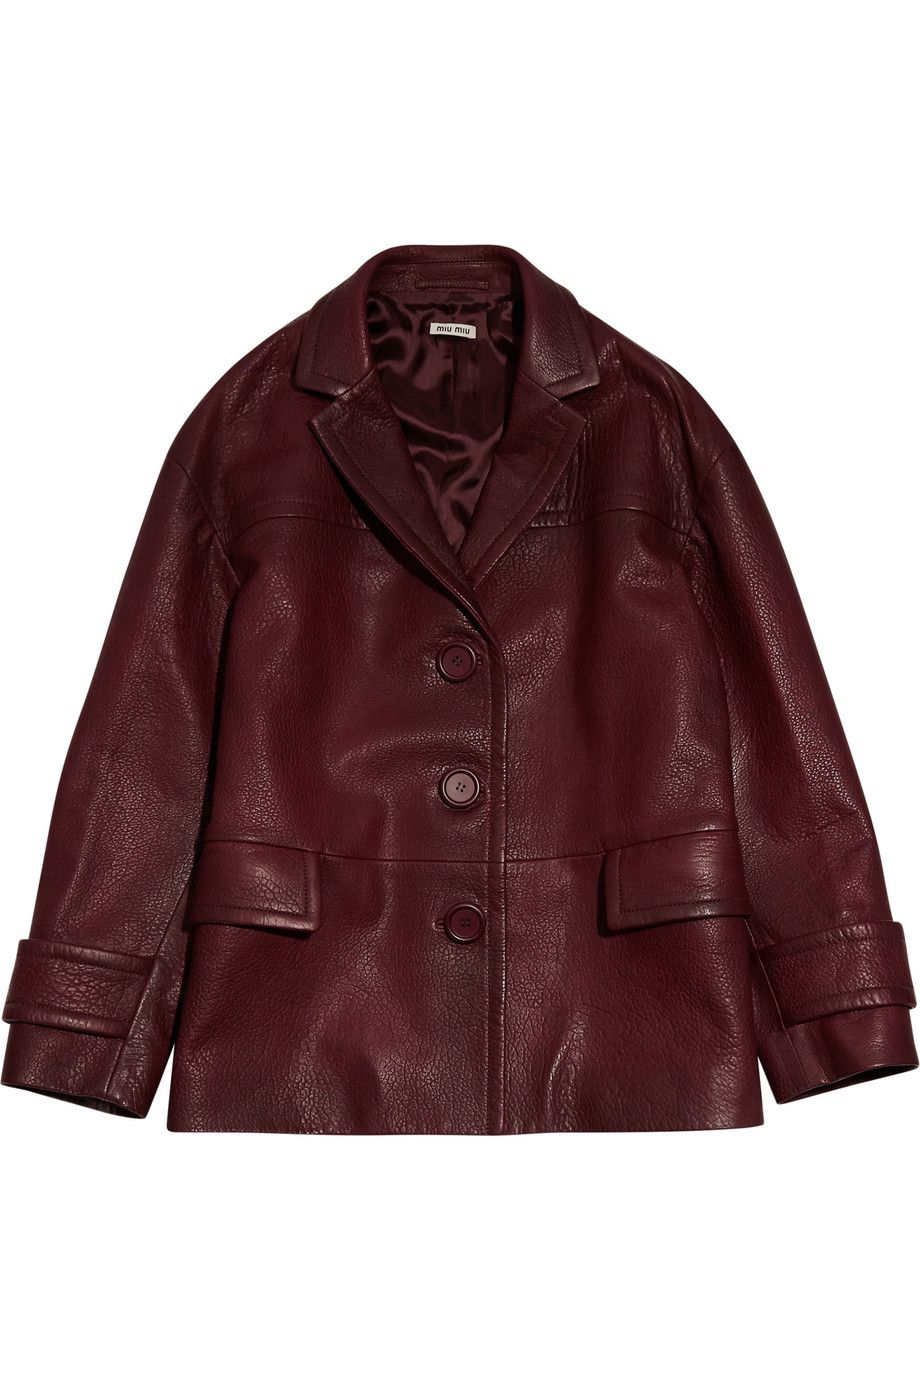 fc87952765c4 Acne Studios   Veste en jean avec finitions en cuir North Raw   NET-A-PORTER.COM    Online Shopping.   Pinterest